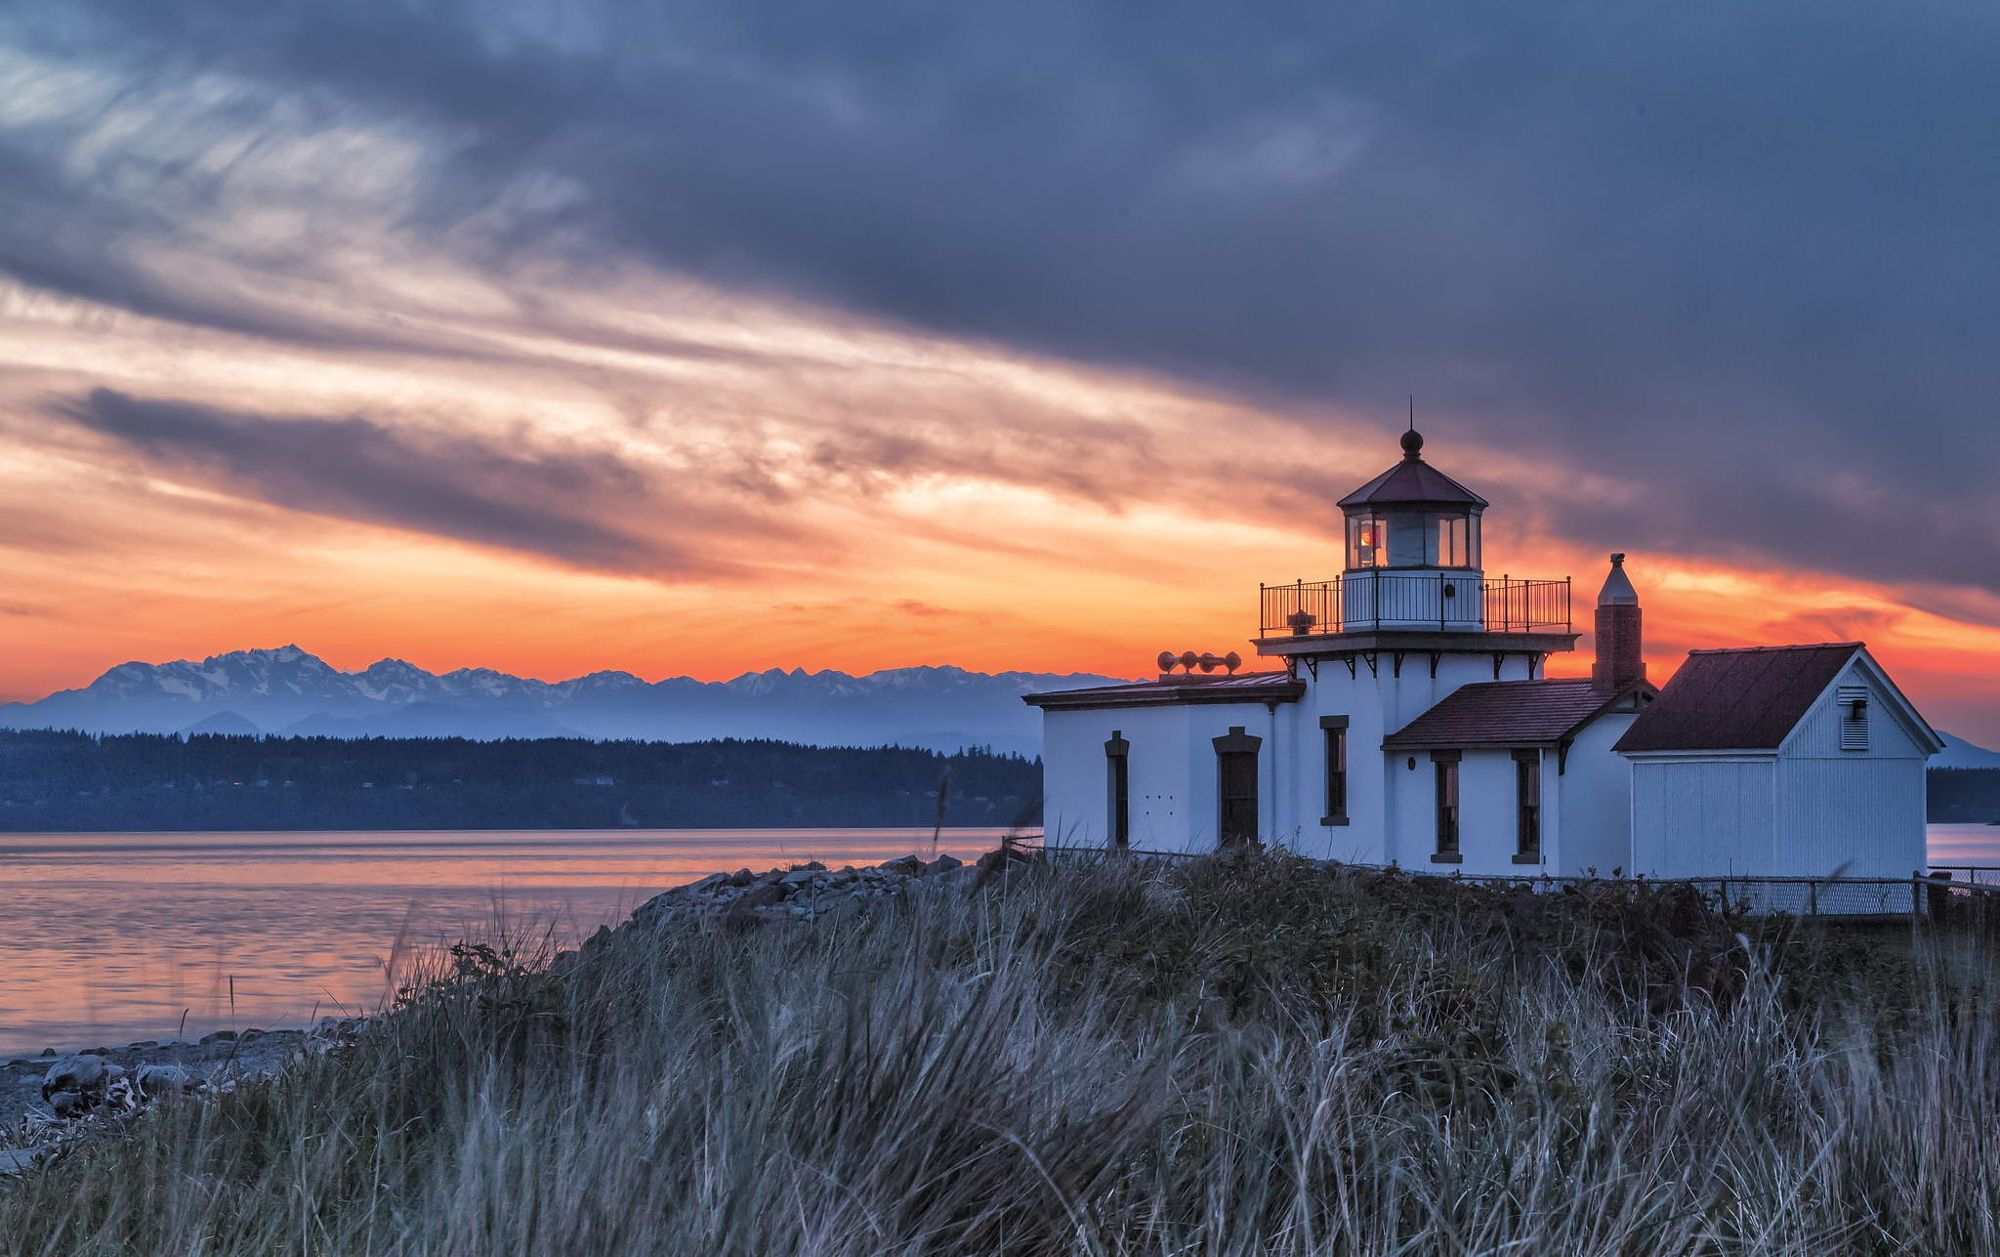 Seattle Sunset At The Discovery Park Lighthouse | Sunset Throughout What Time Is Sunset In Zip Code 98446